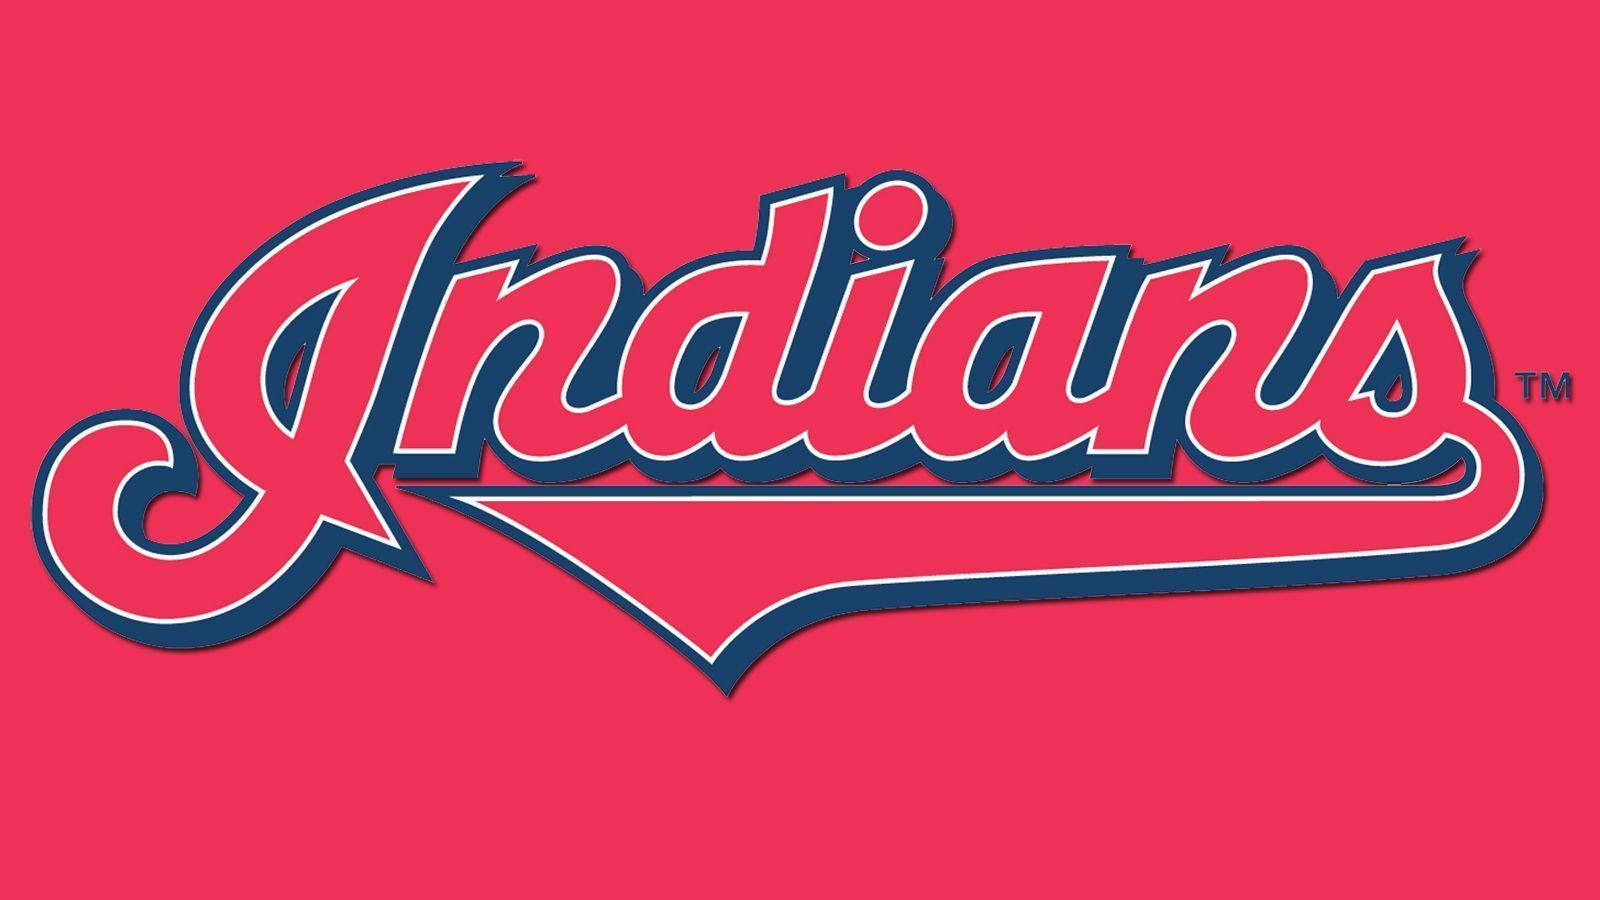 Cleveland Indians Wallpaper | Cleveland Indians | Places to Visit ...